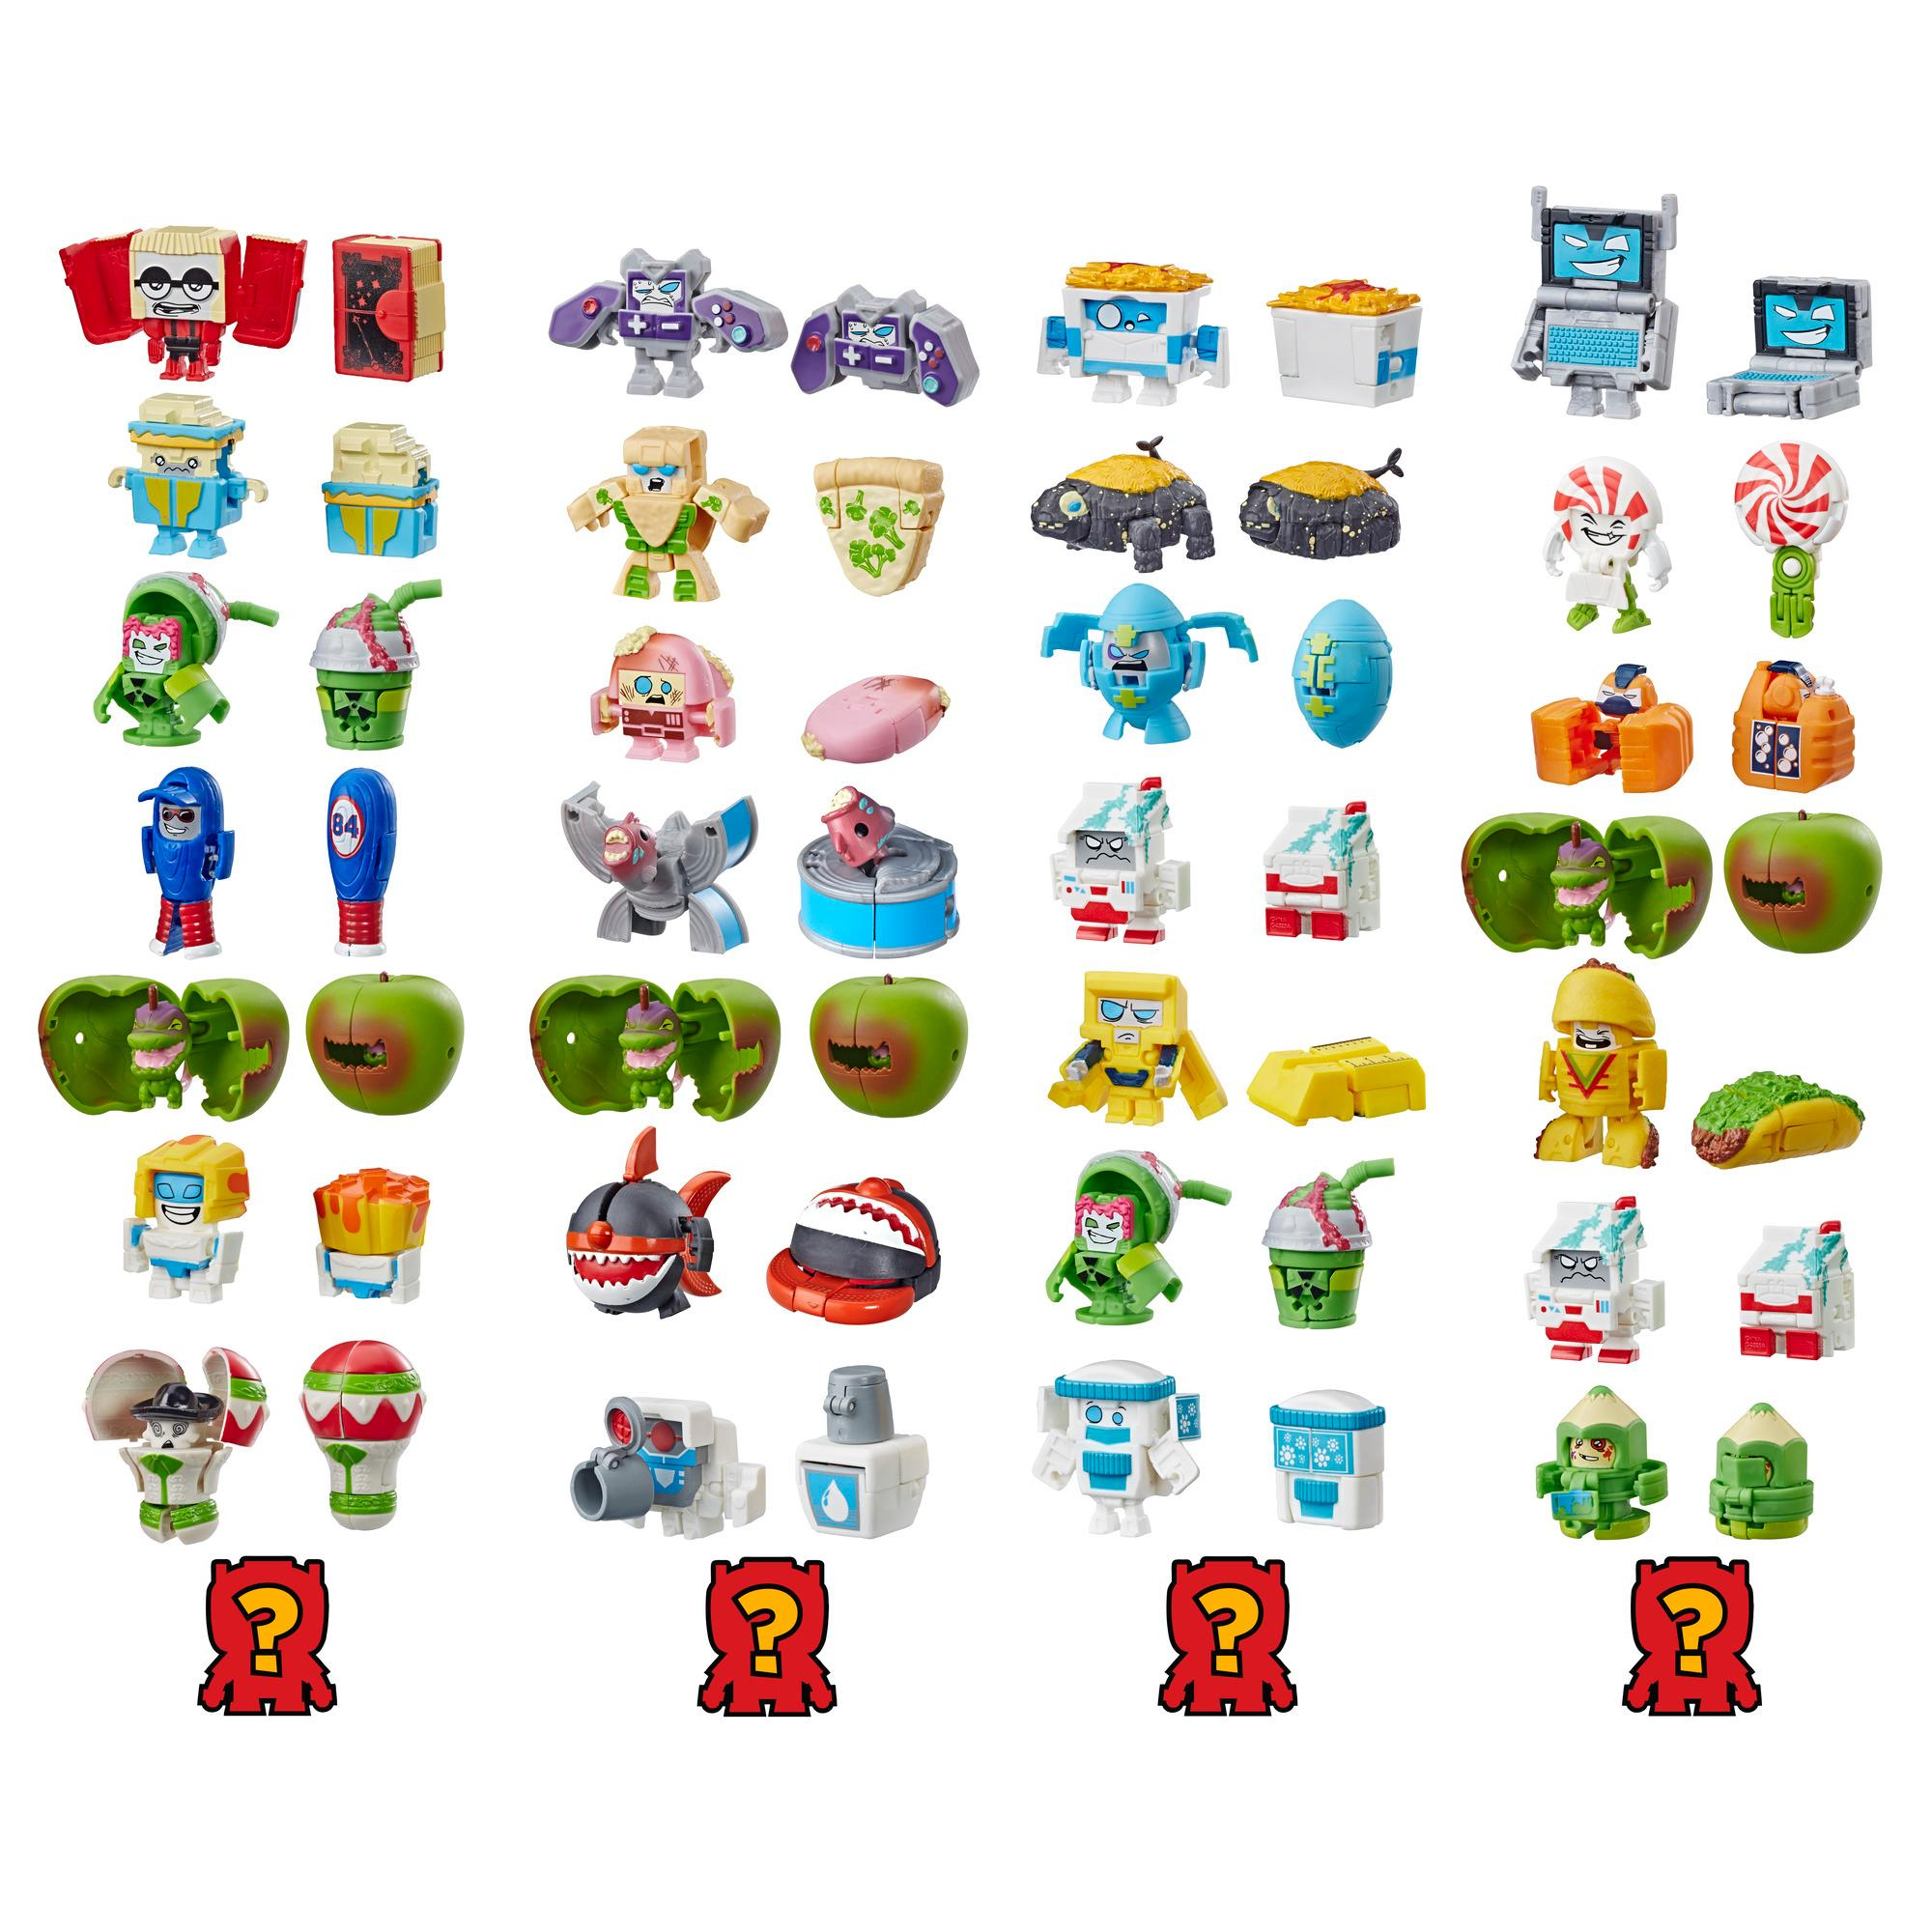 Transformers Toys BotBots Series 2 Spoiled Rottens 8-Pack – Mystery 2-In-1 Collectible Figures! Kids Ages 5 and Up (Styles and Colors May Vary) by Hasbro